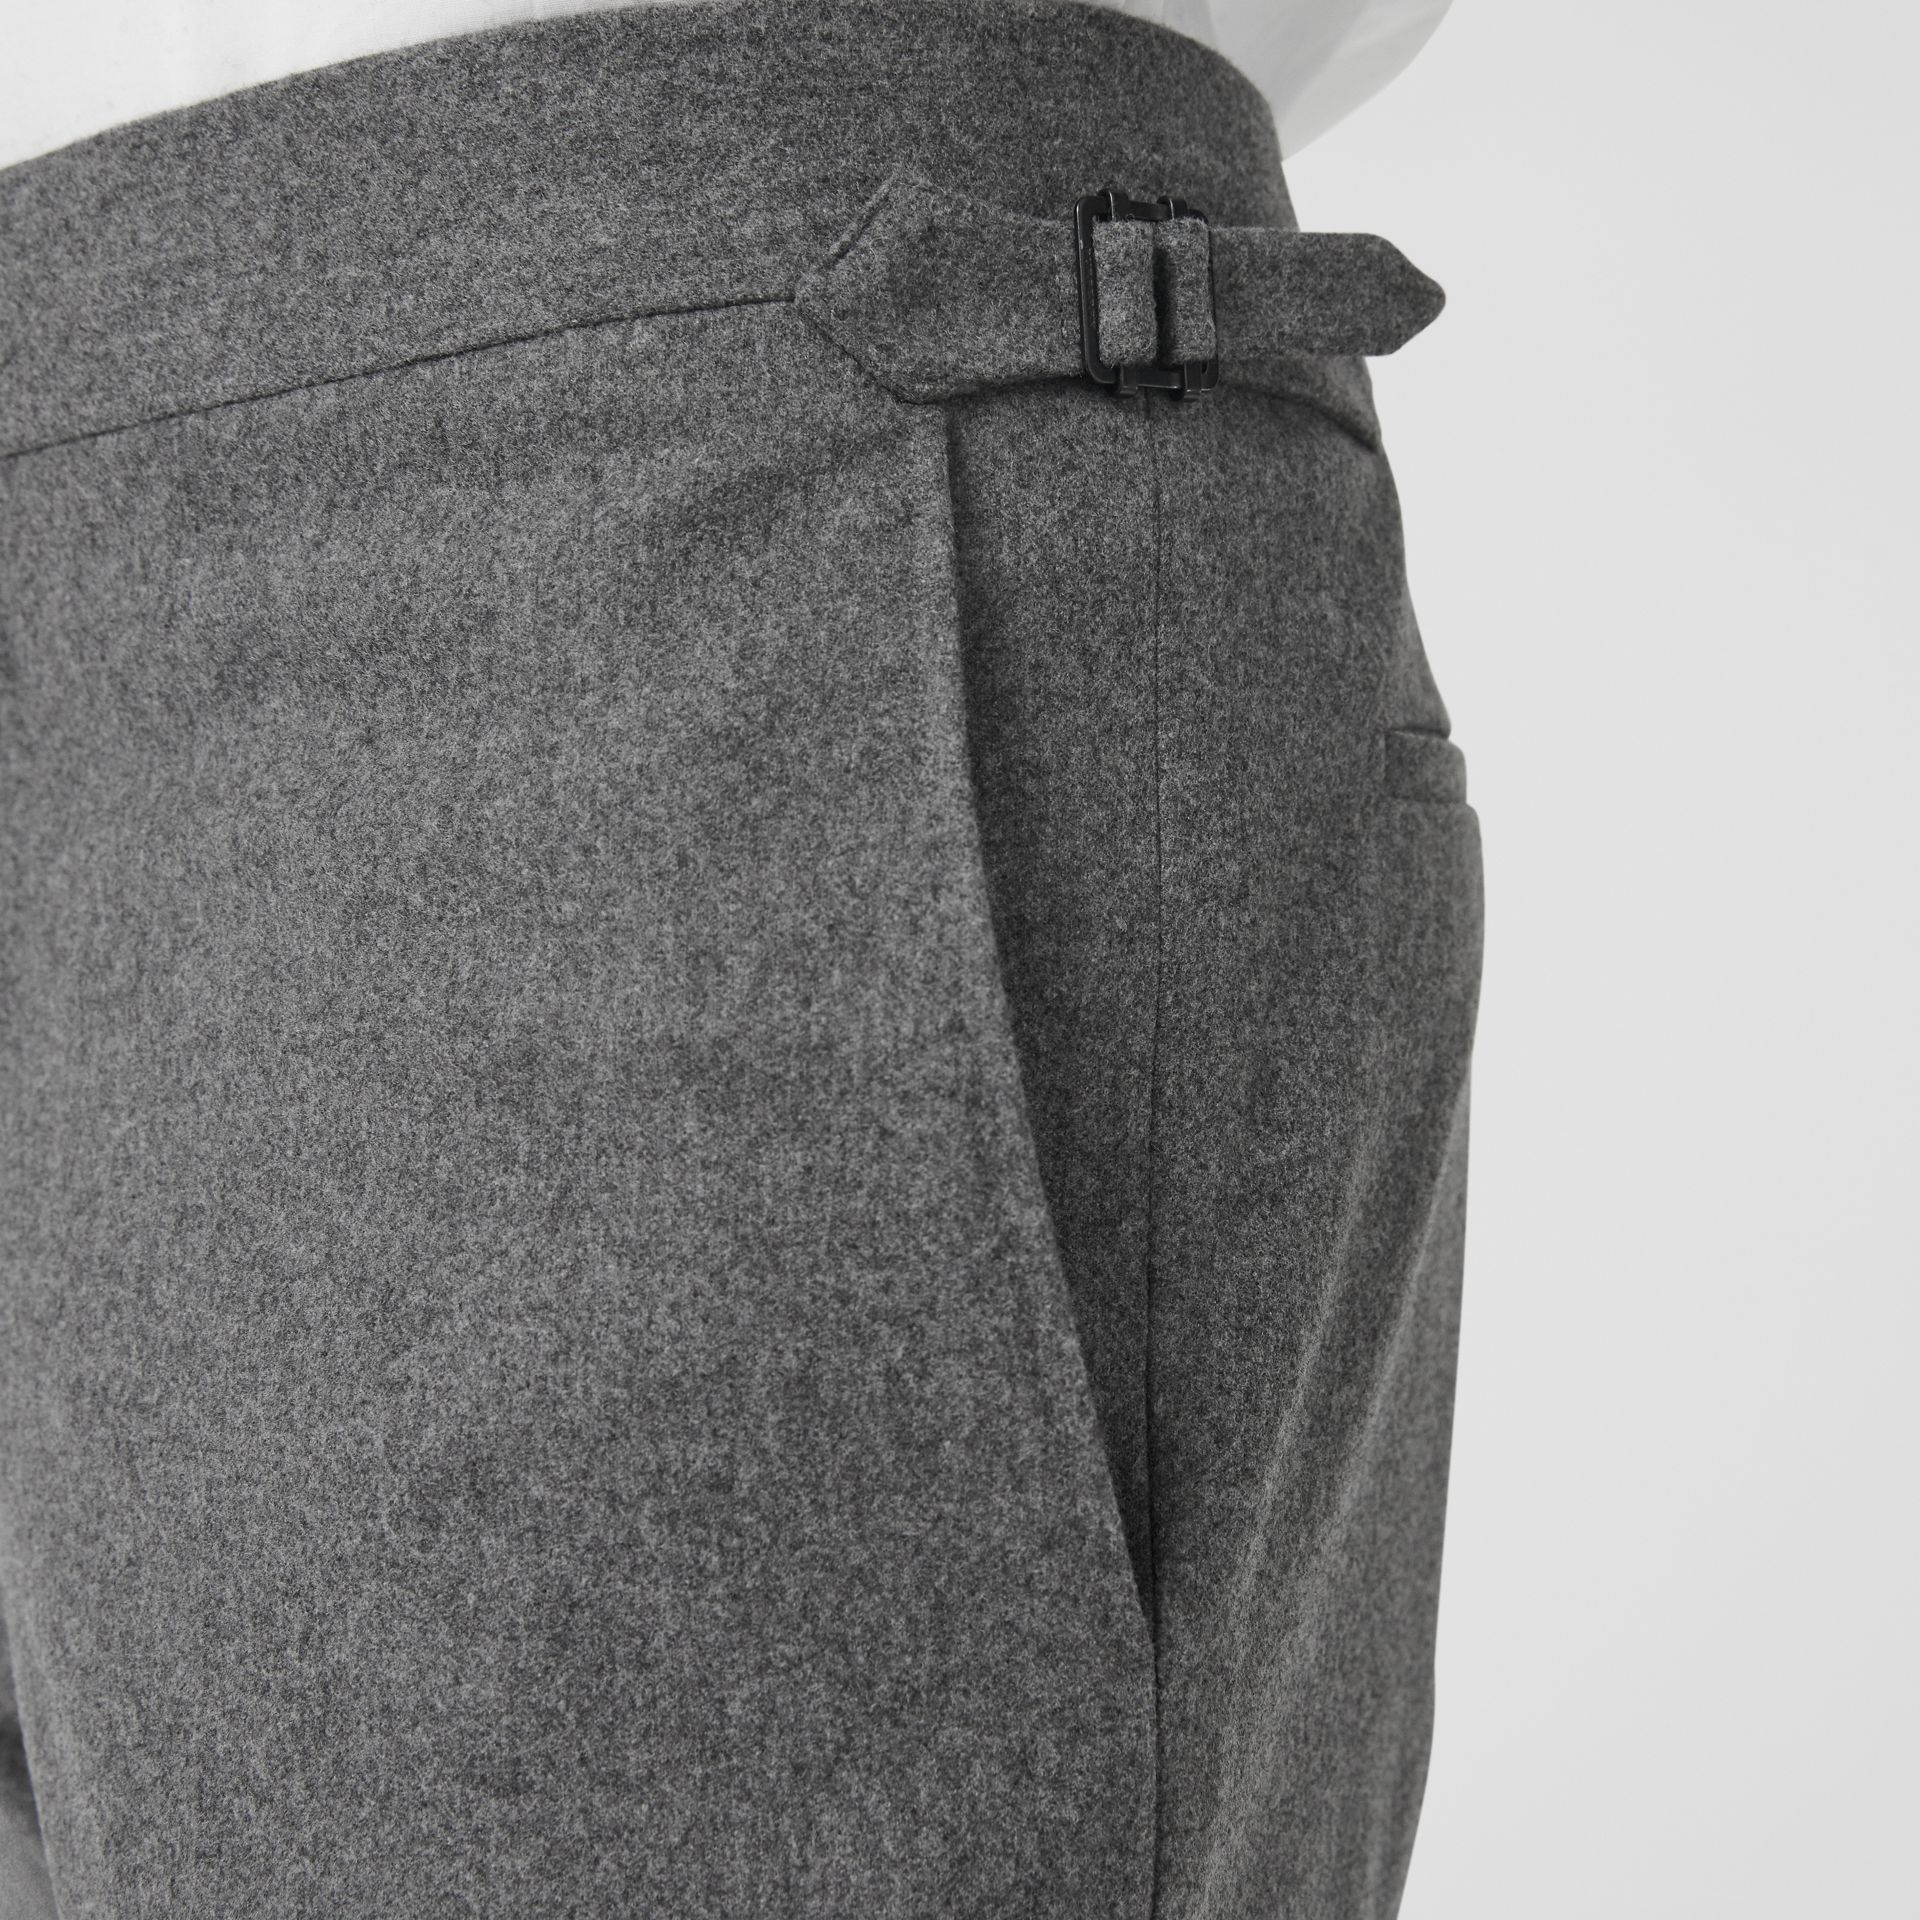 Classic Fit Wool Cashmere Tailored Trousers in Grey - Men | Burberry - gallery image 1